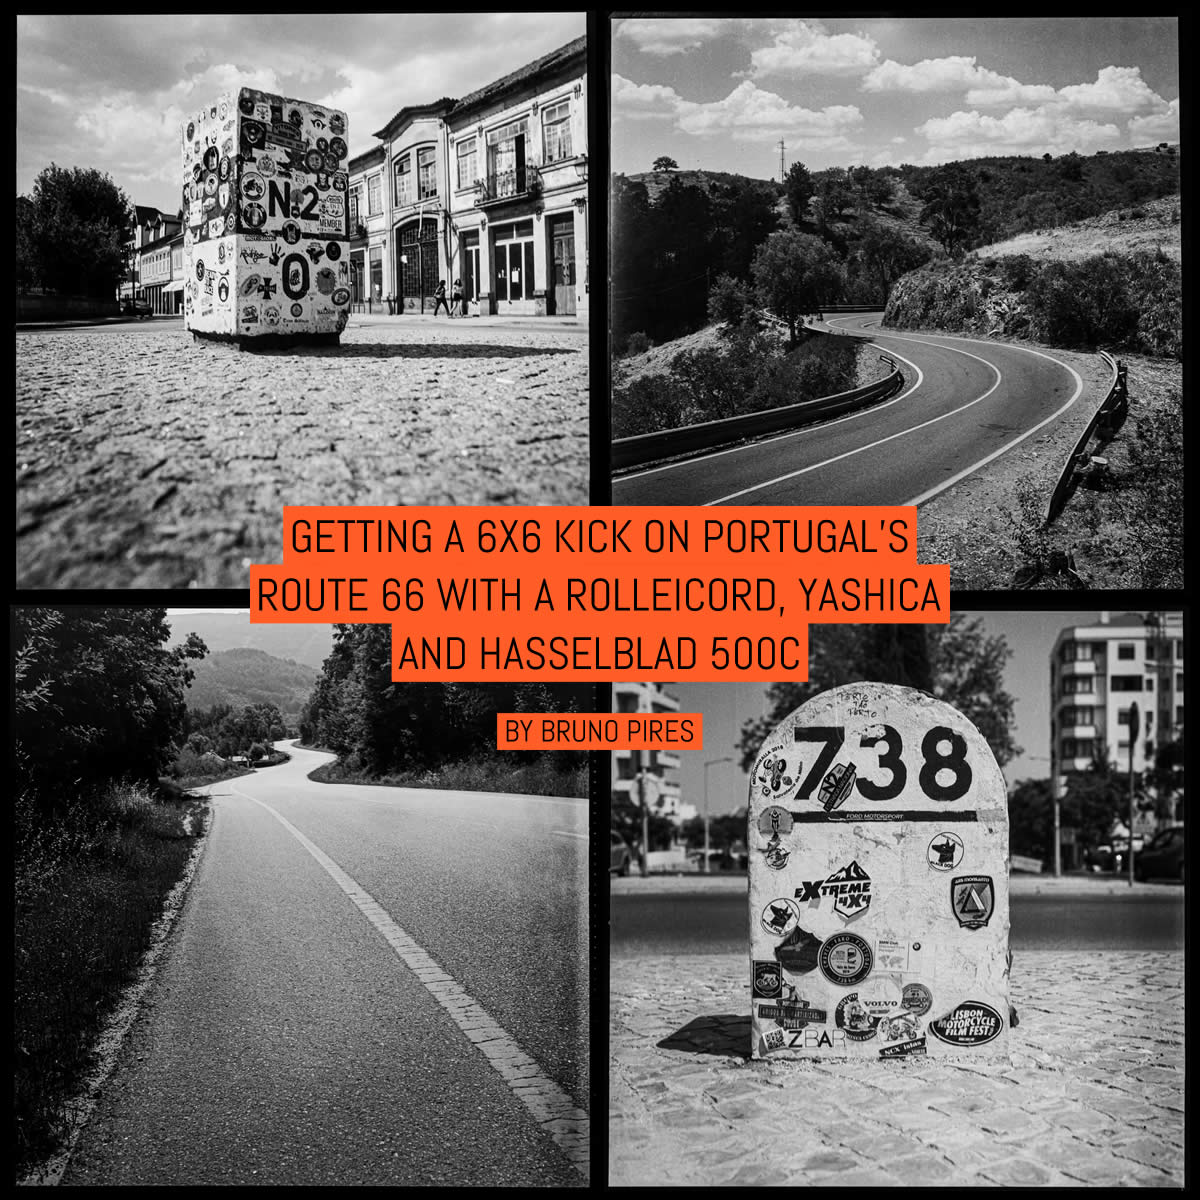 Cover - Getting a 6x6 kick on Portugal's Route 66 with a Rolleicord, Yashica and Hasselblad 500C